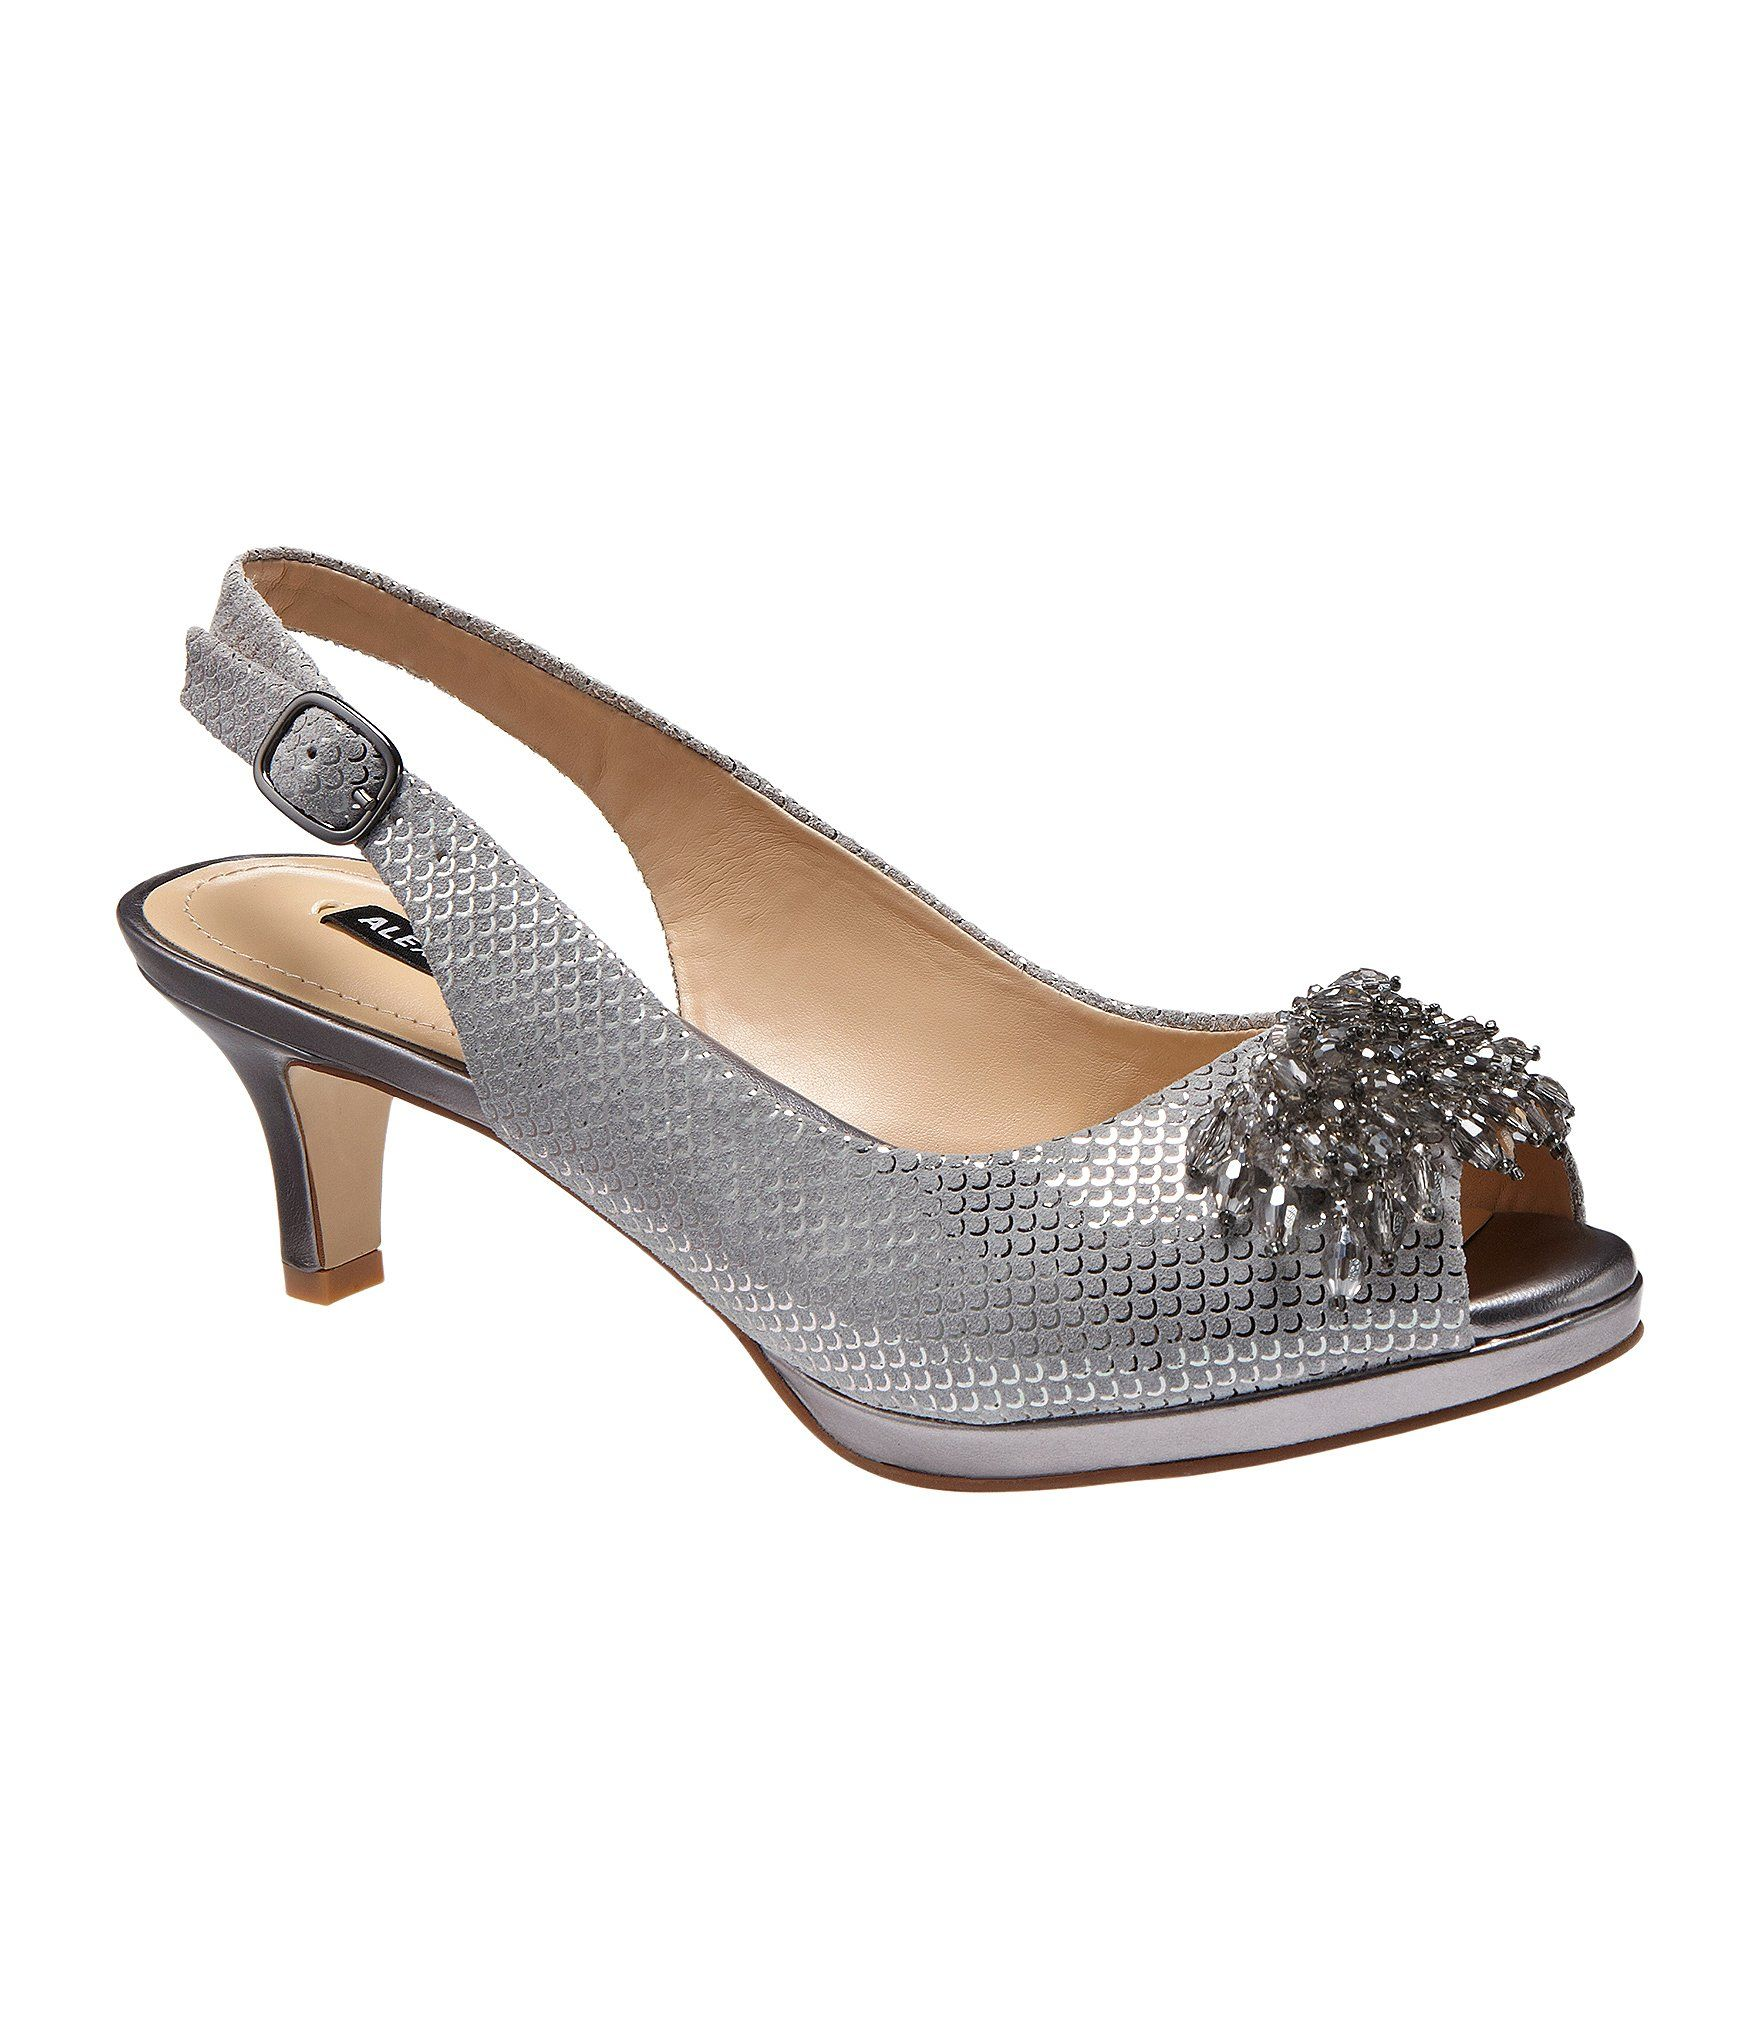 Alex Marie Marla Metallic Suede Beaded Accent Peep Toe Pumps